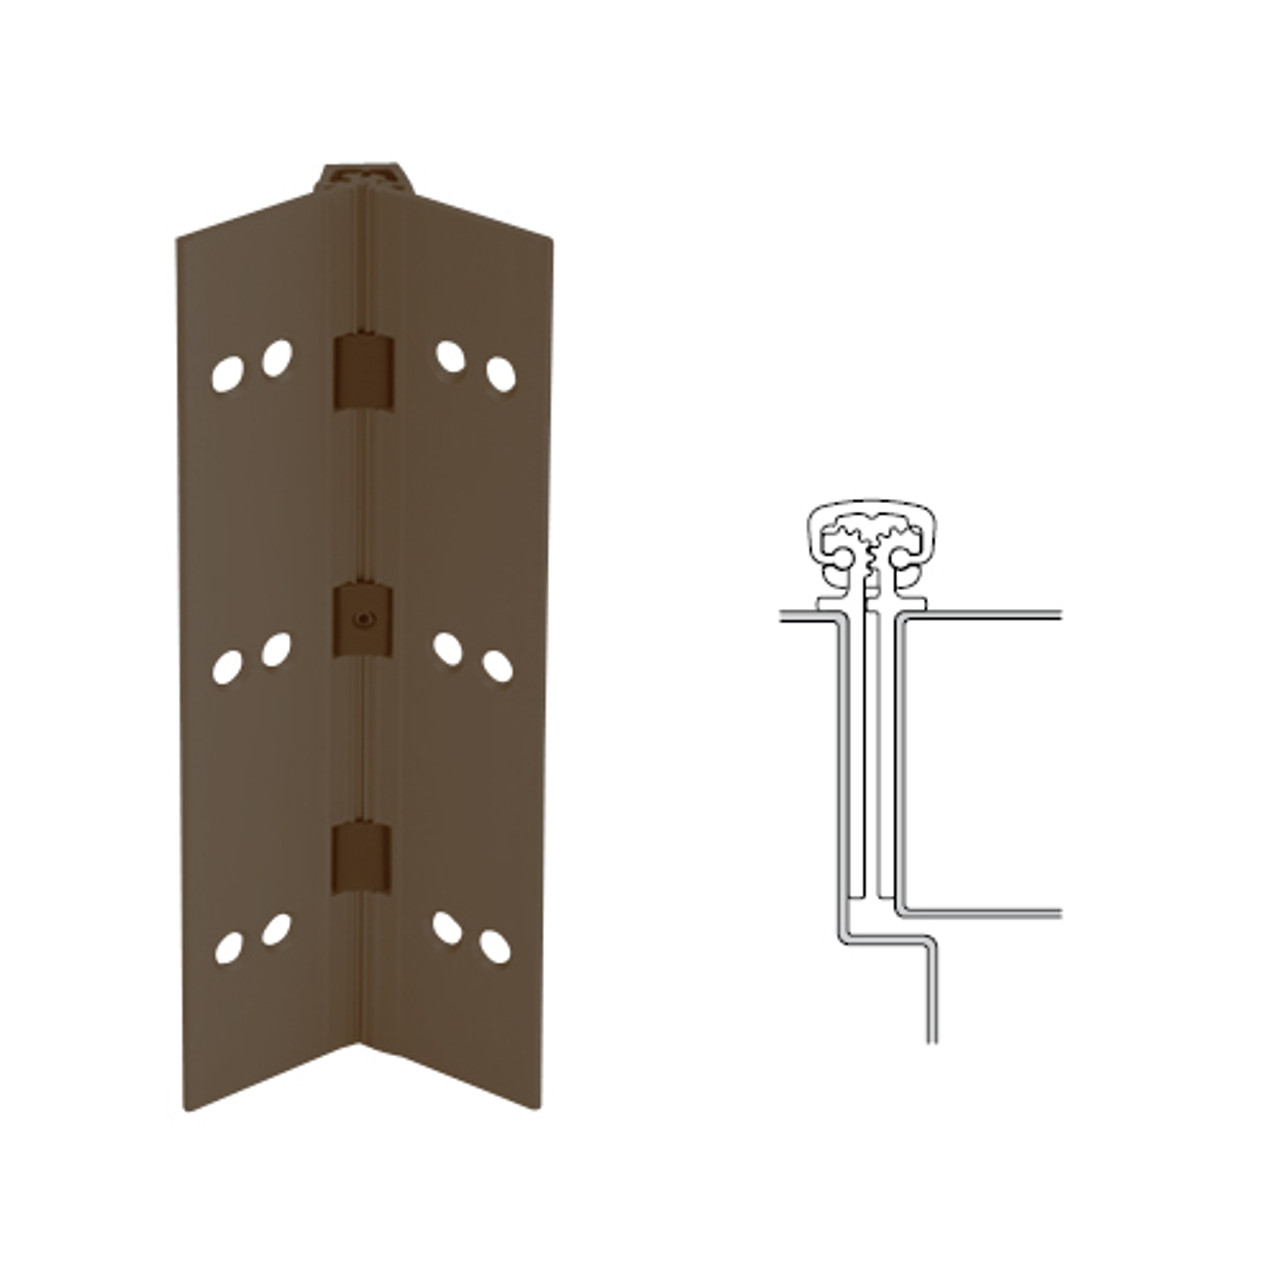 027XY-313AN-95-TFWD IVES Full Mortise Continuous Geared Hinges with Thread Forming Screws in Dark Bronze Anodized